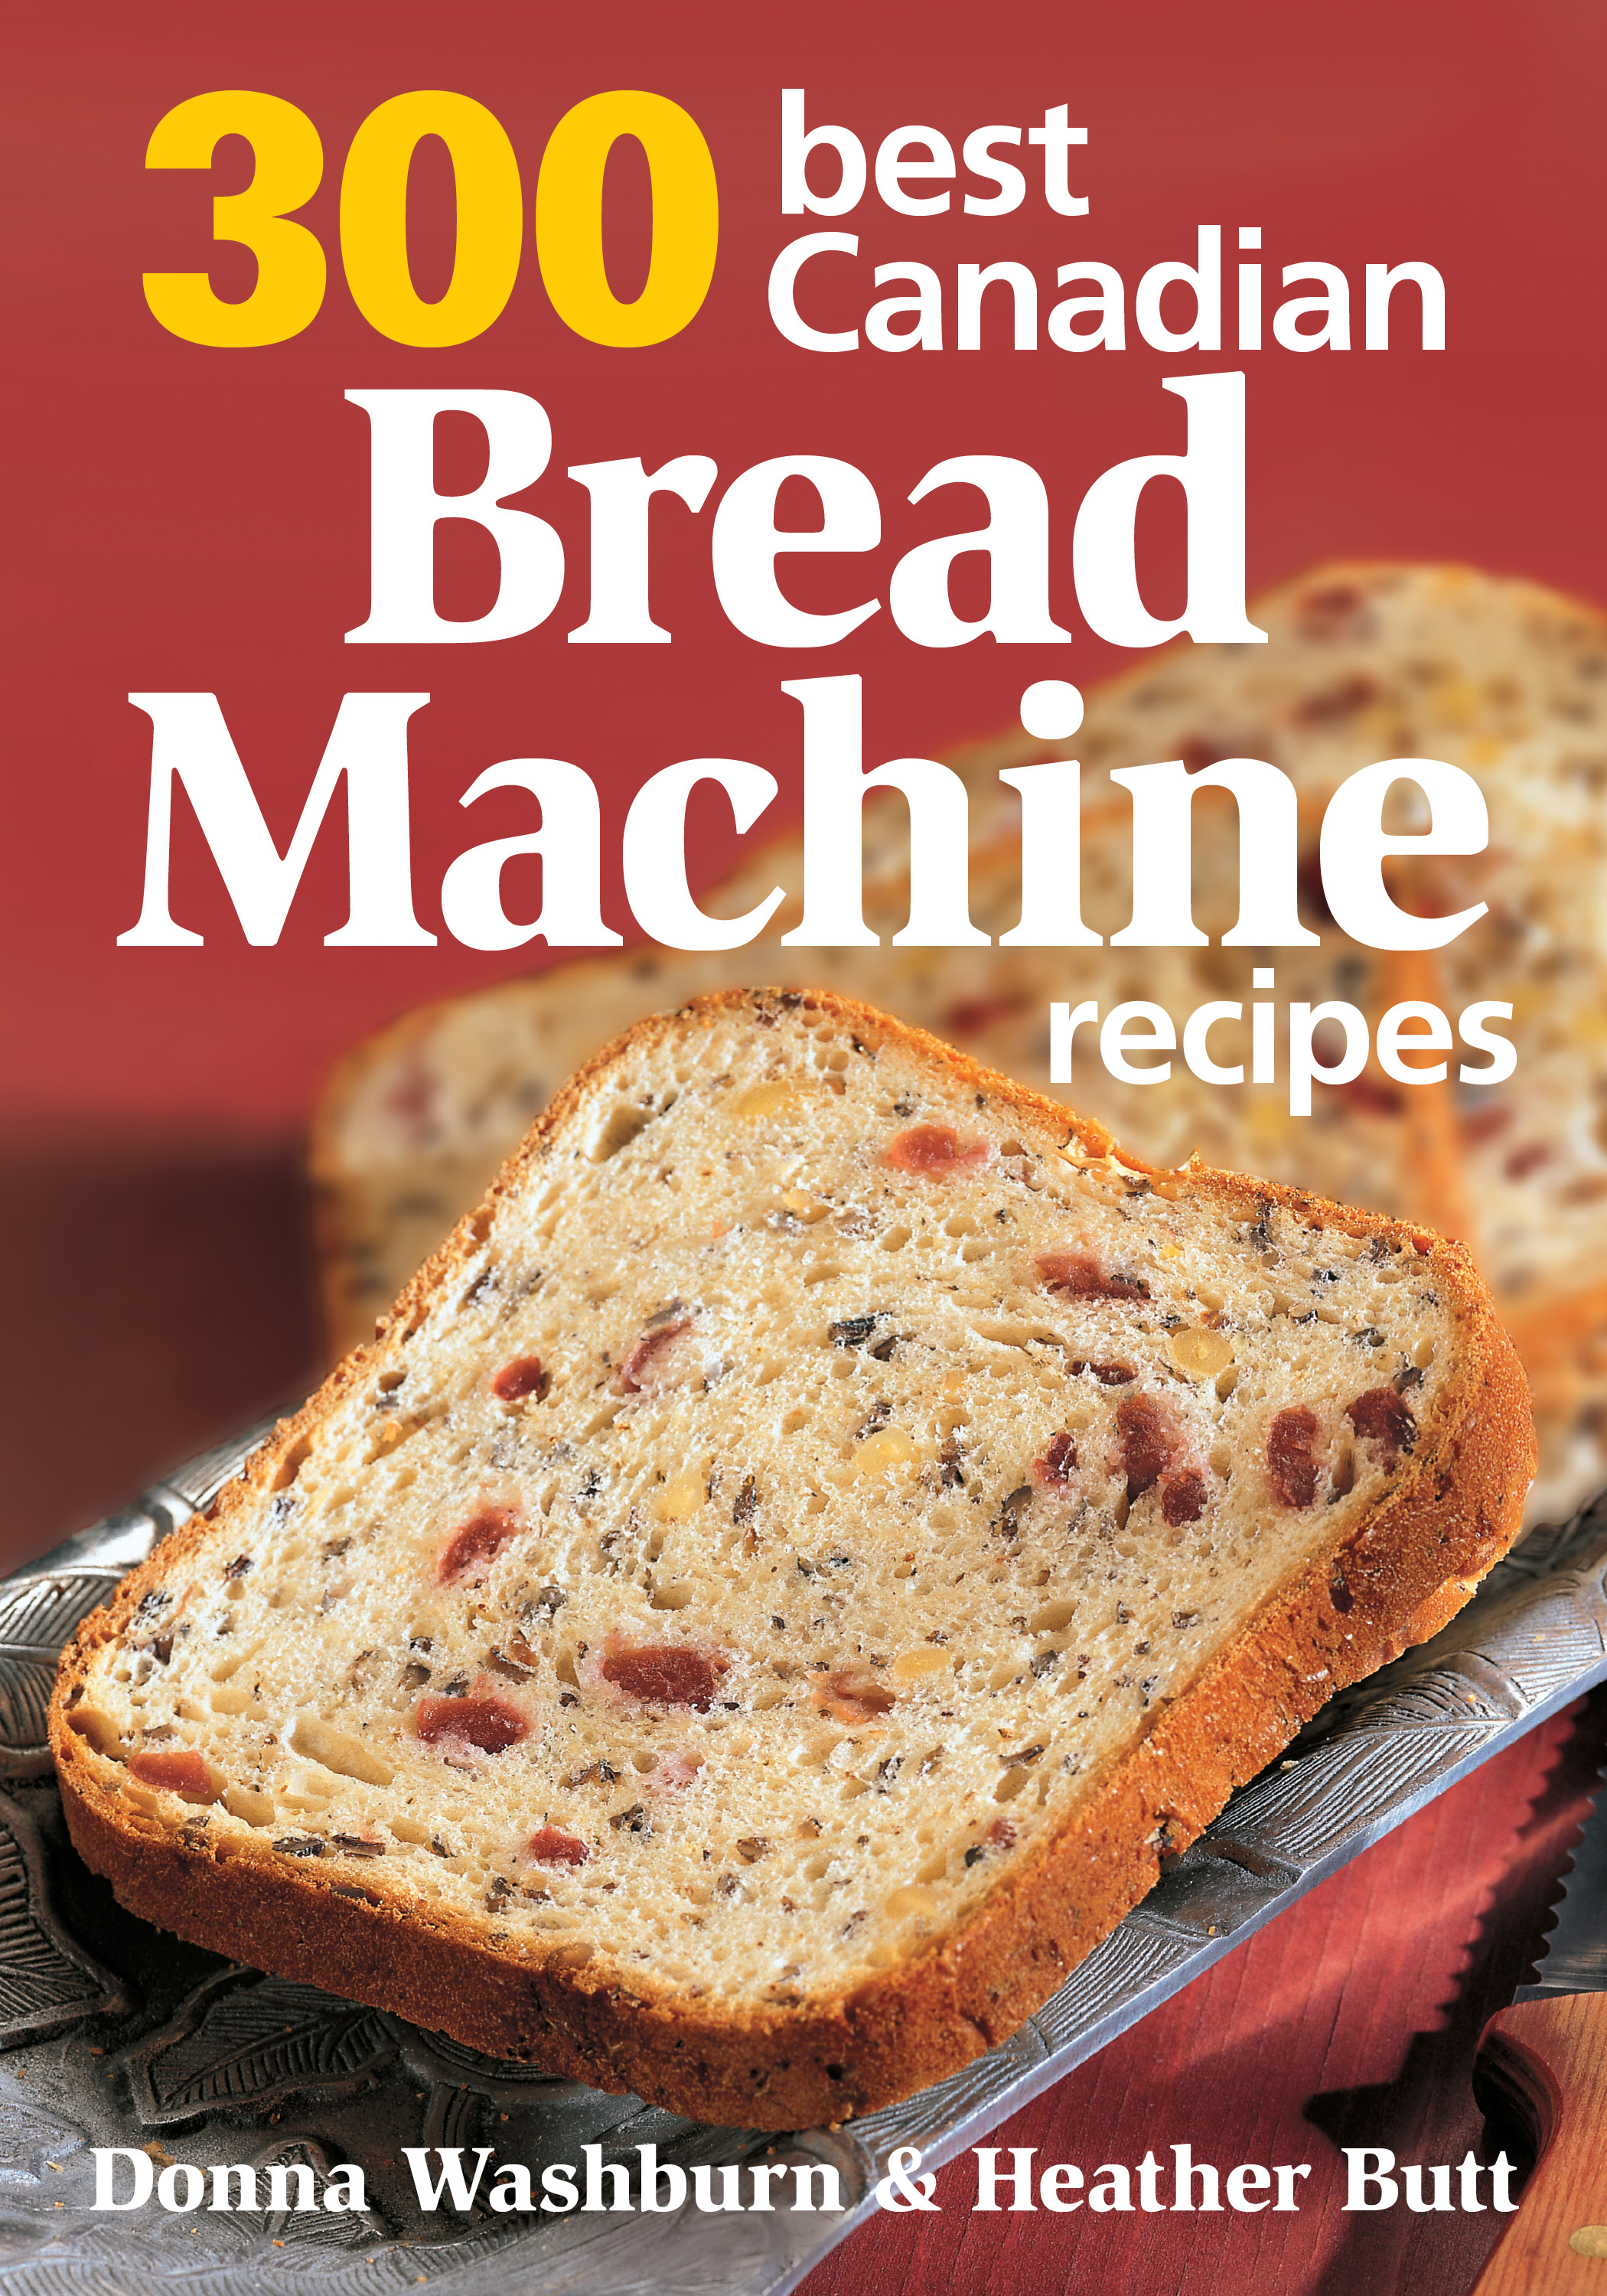 Bread Maker Machine Recipes  300 Best Canadian Bread Machine Recipes by Robert Rose Inc